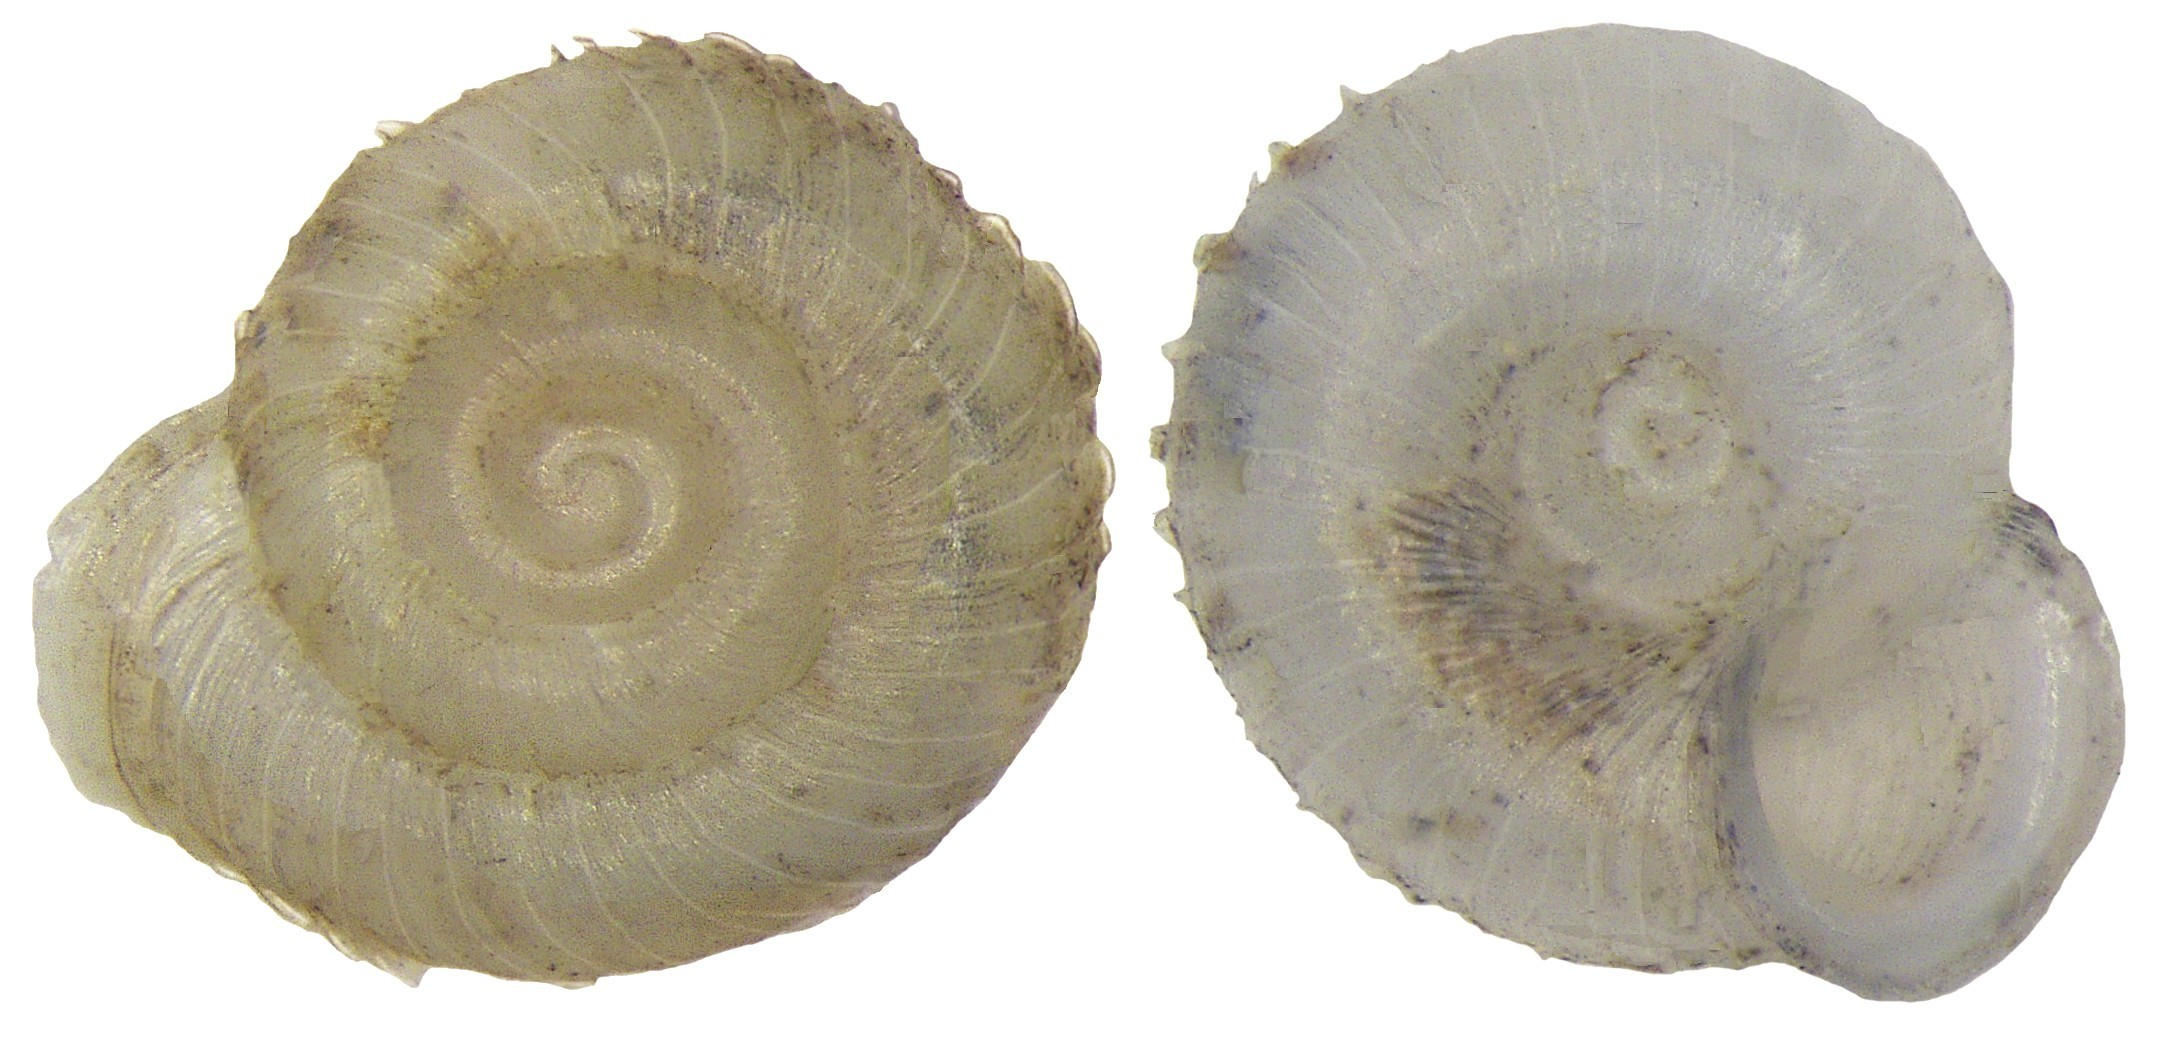 Image of ribbed grass snail